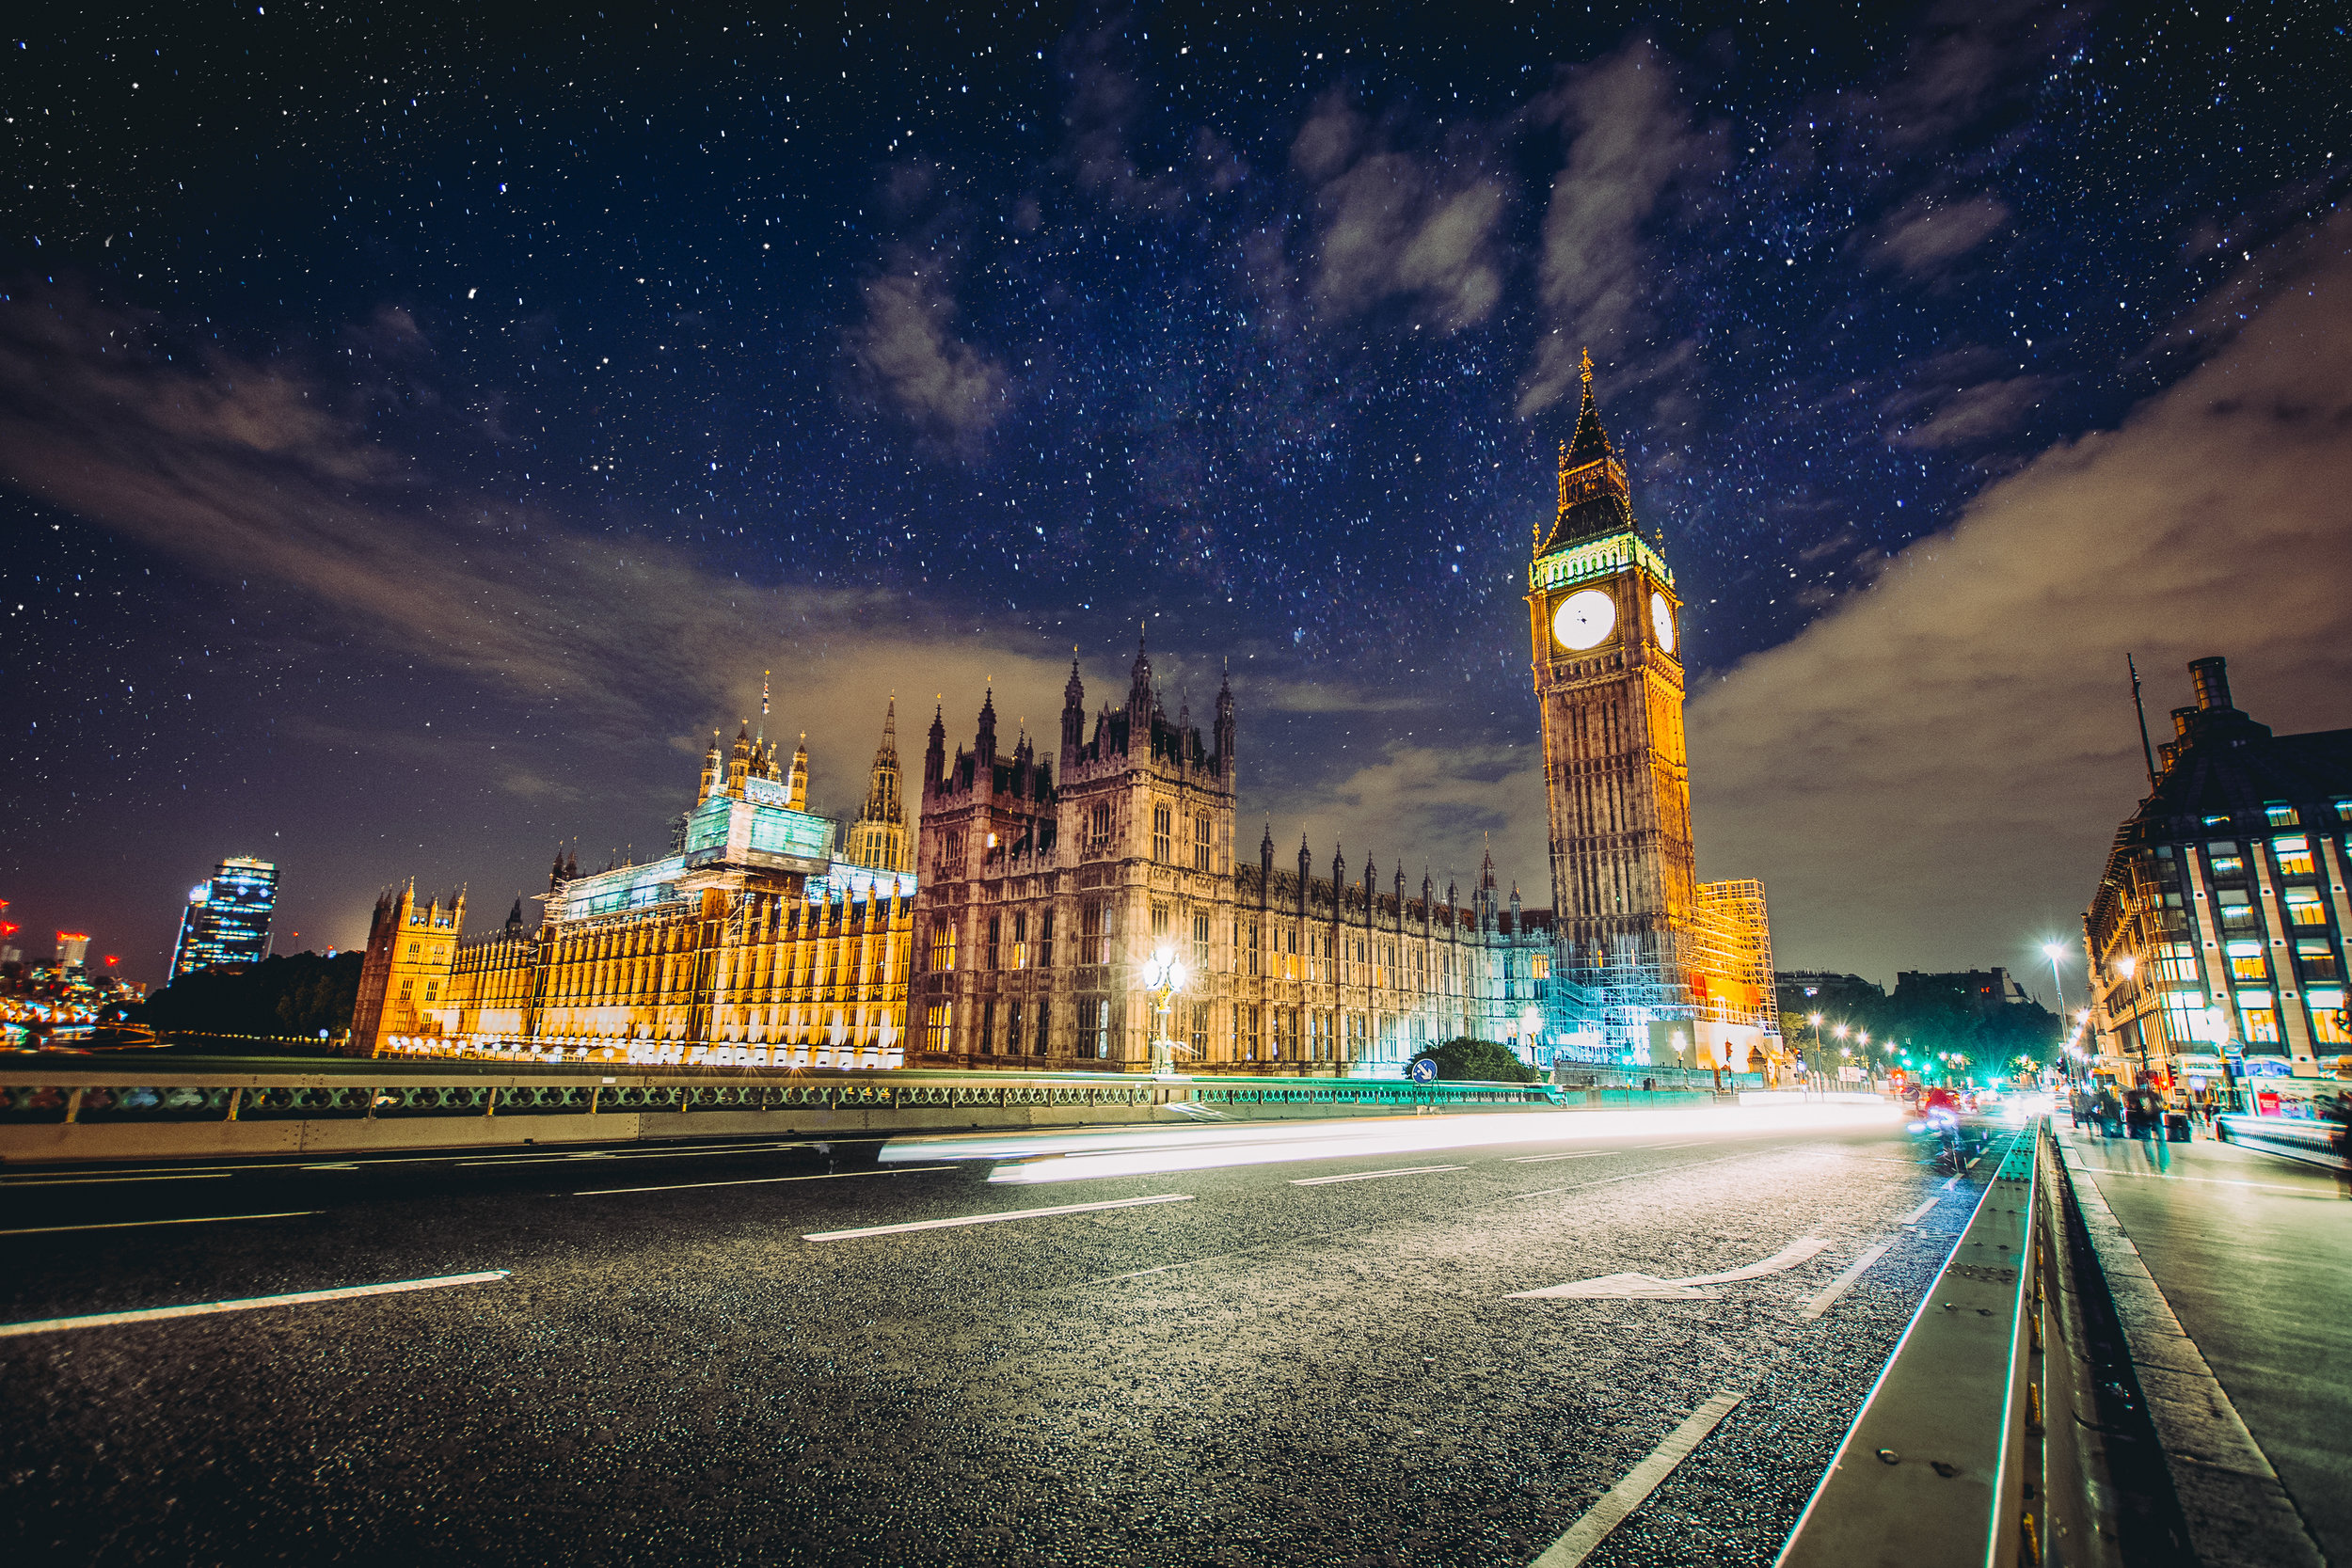 Big Ben at night. What more is there to say?